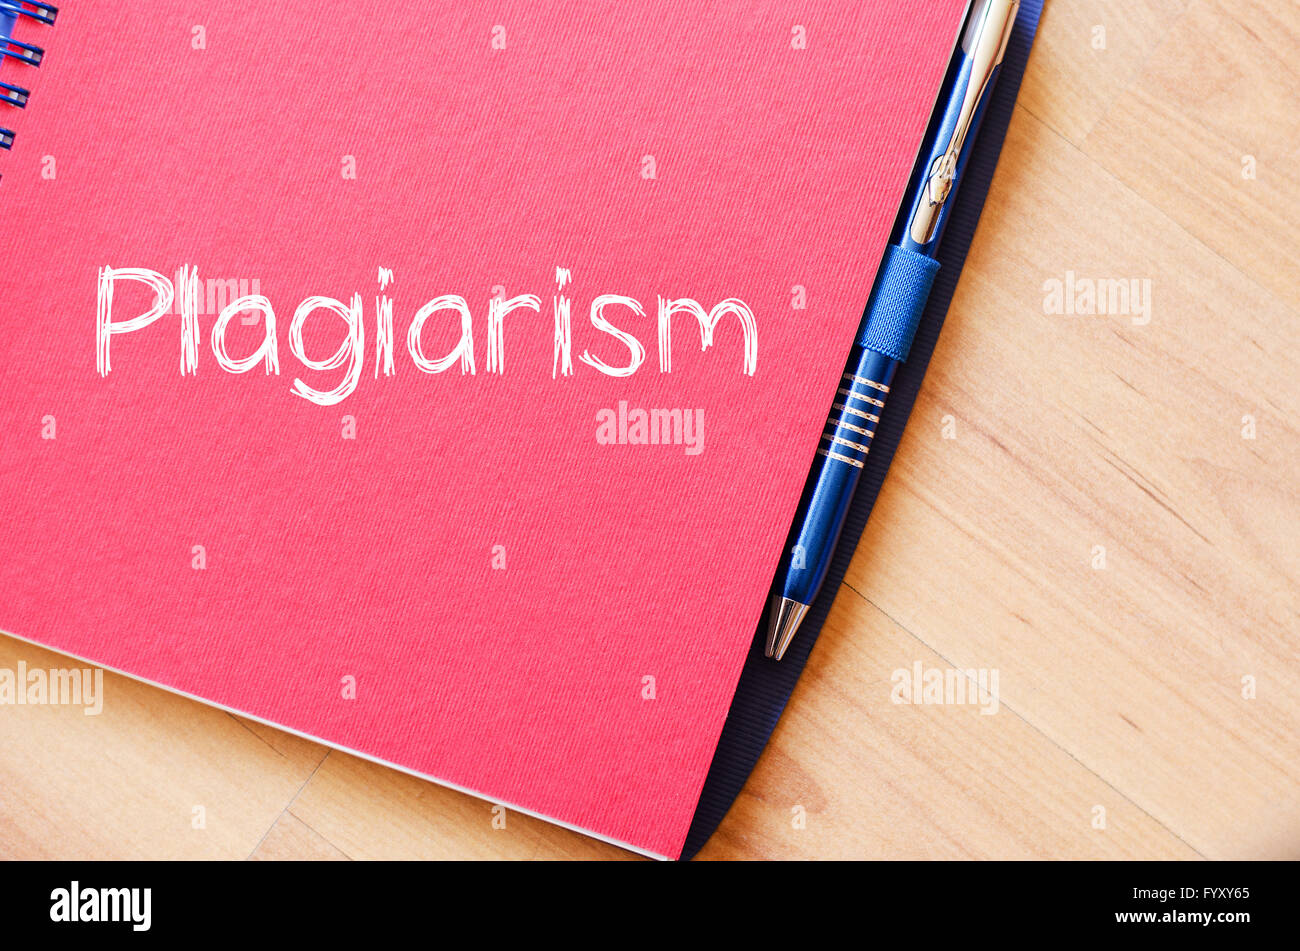 Plagiarism write on notebook - Stock Image